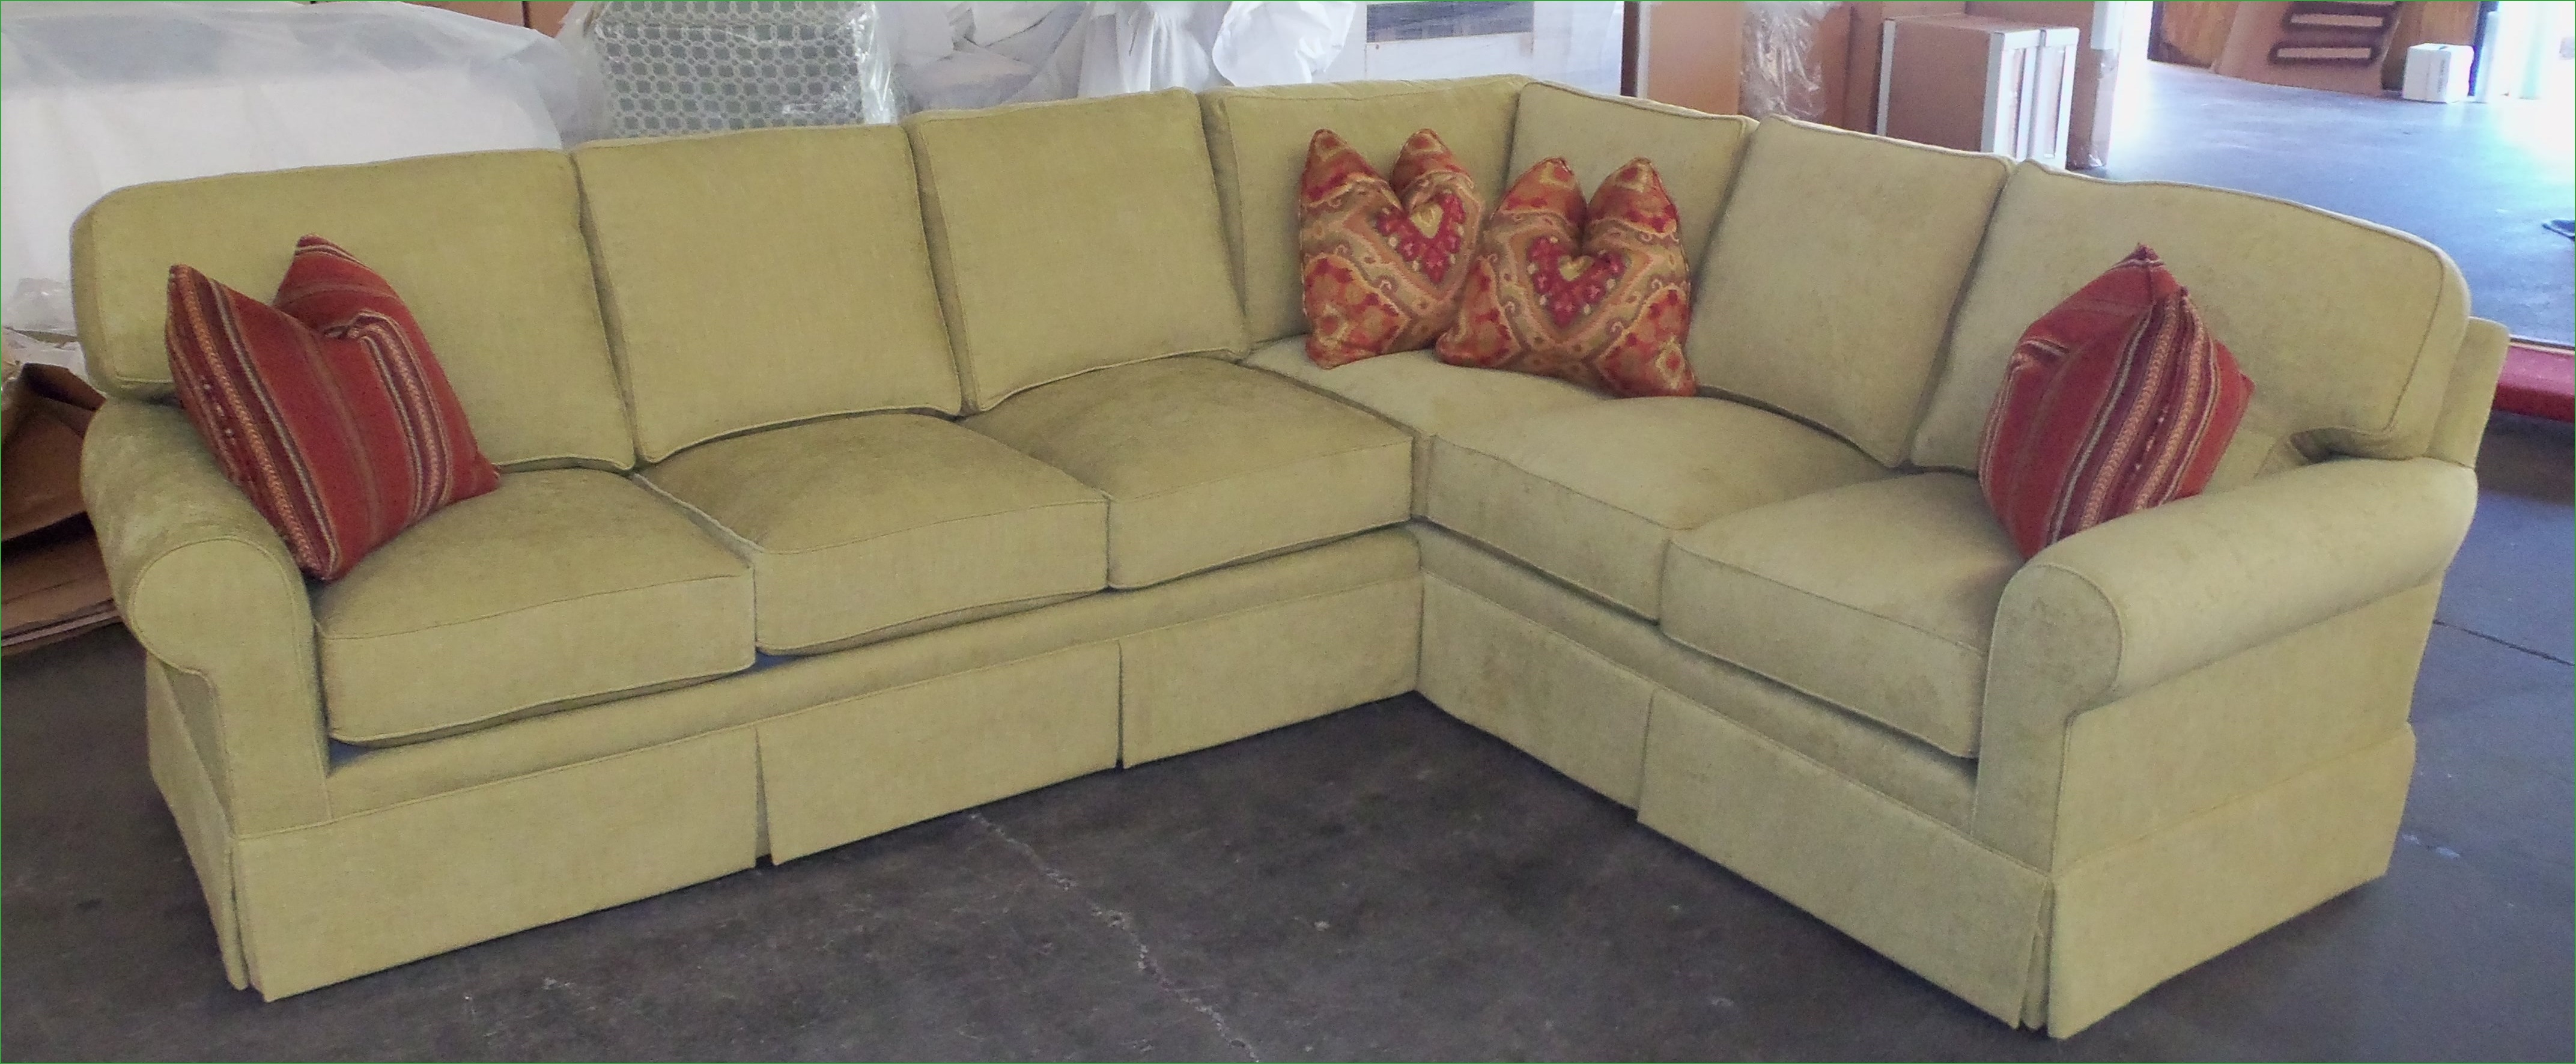 Bentley Sectional Sofa King Hickory Thesofa